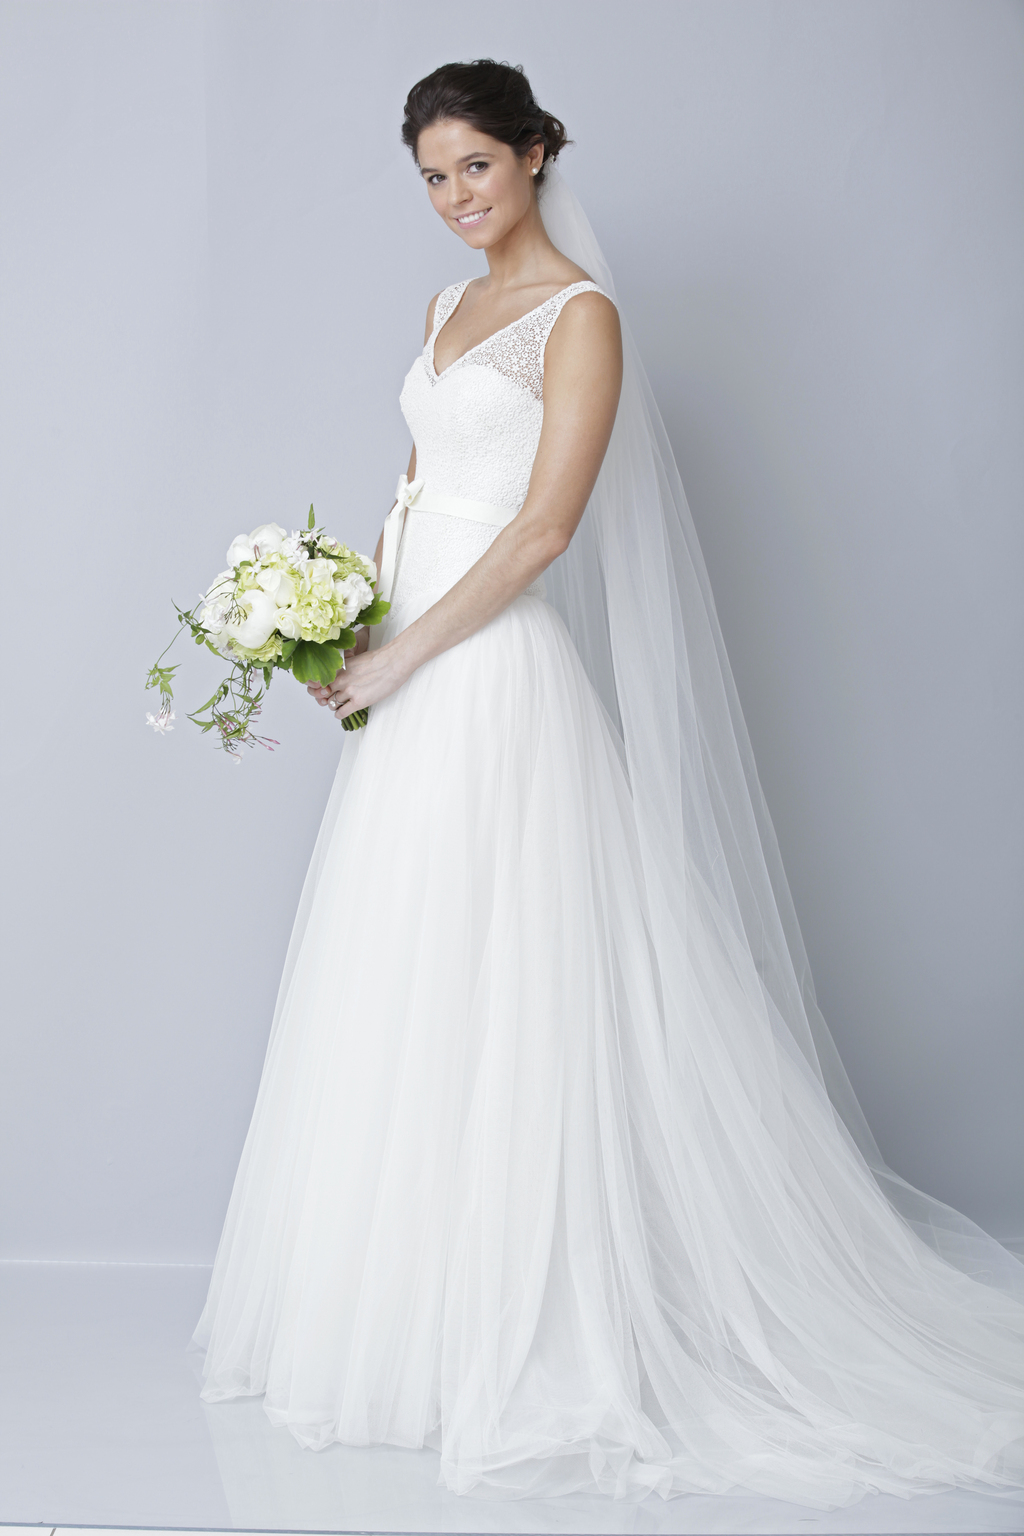 Theia-white-collection-wedding-dress-spring-2013-bridal-gown-890012.full